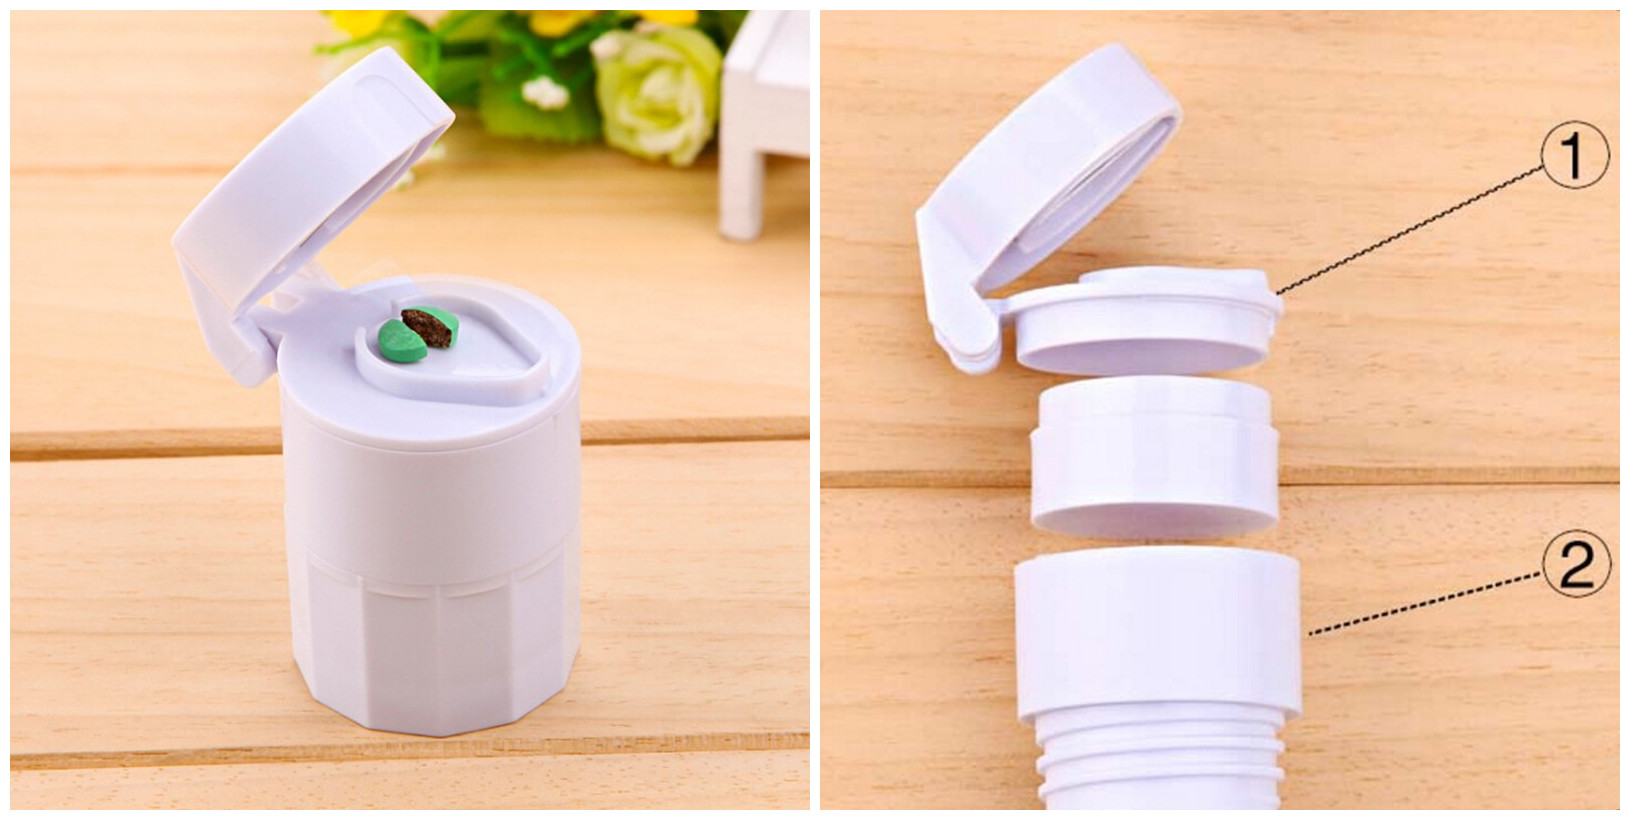 4 in 1 Pill Cutter Portable 4 Layer Powder Tablet Grinder Powder Medicine Storage Box Divider Splitter Tablet Cutter